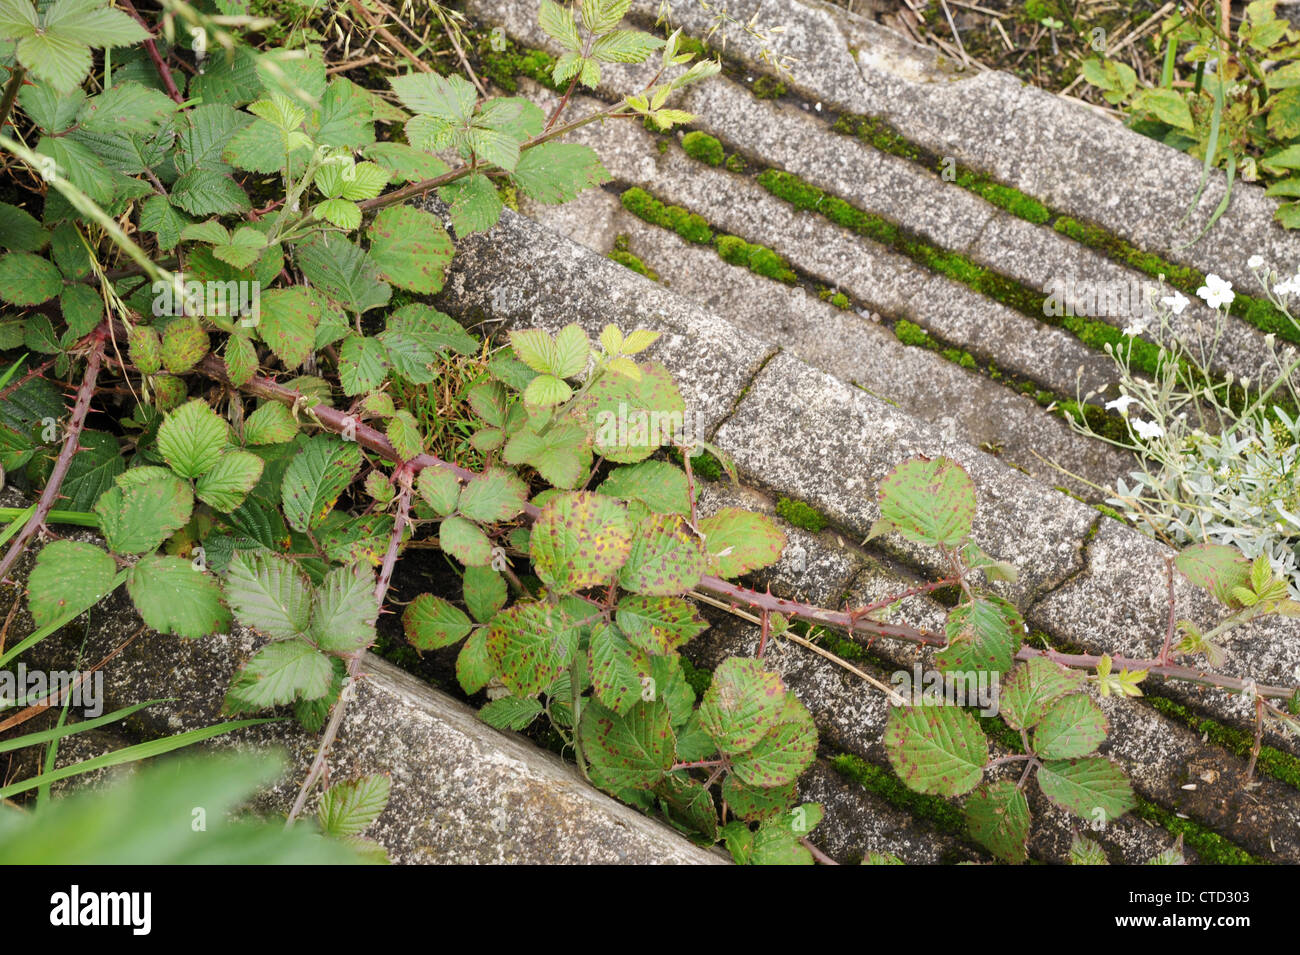 Steps overgrown by brambles and moss. - Stock Image